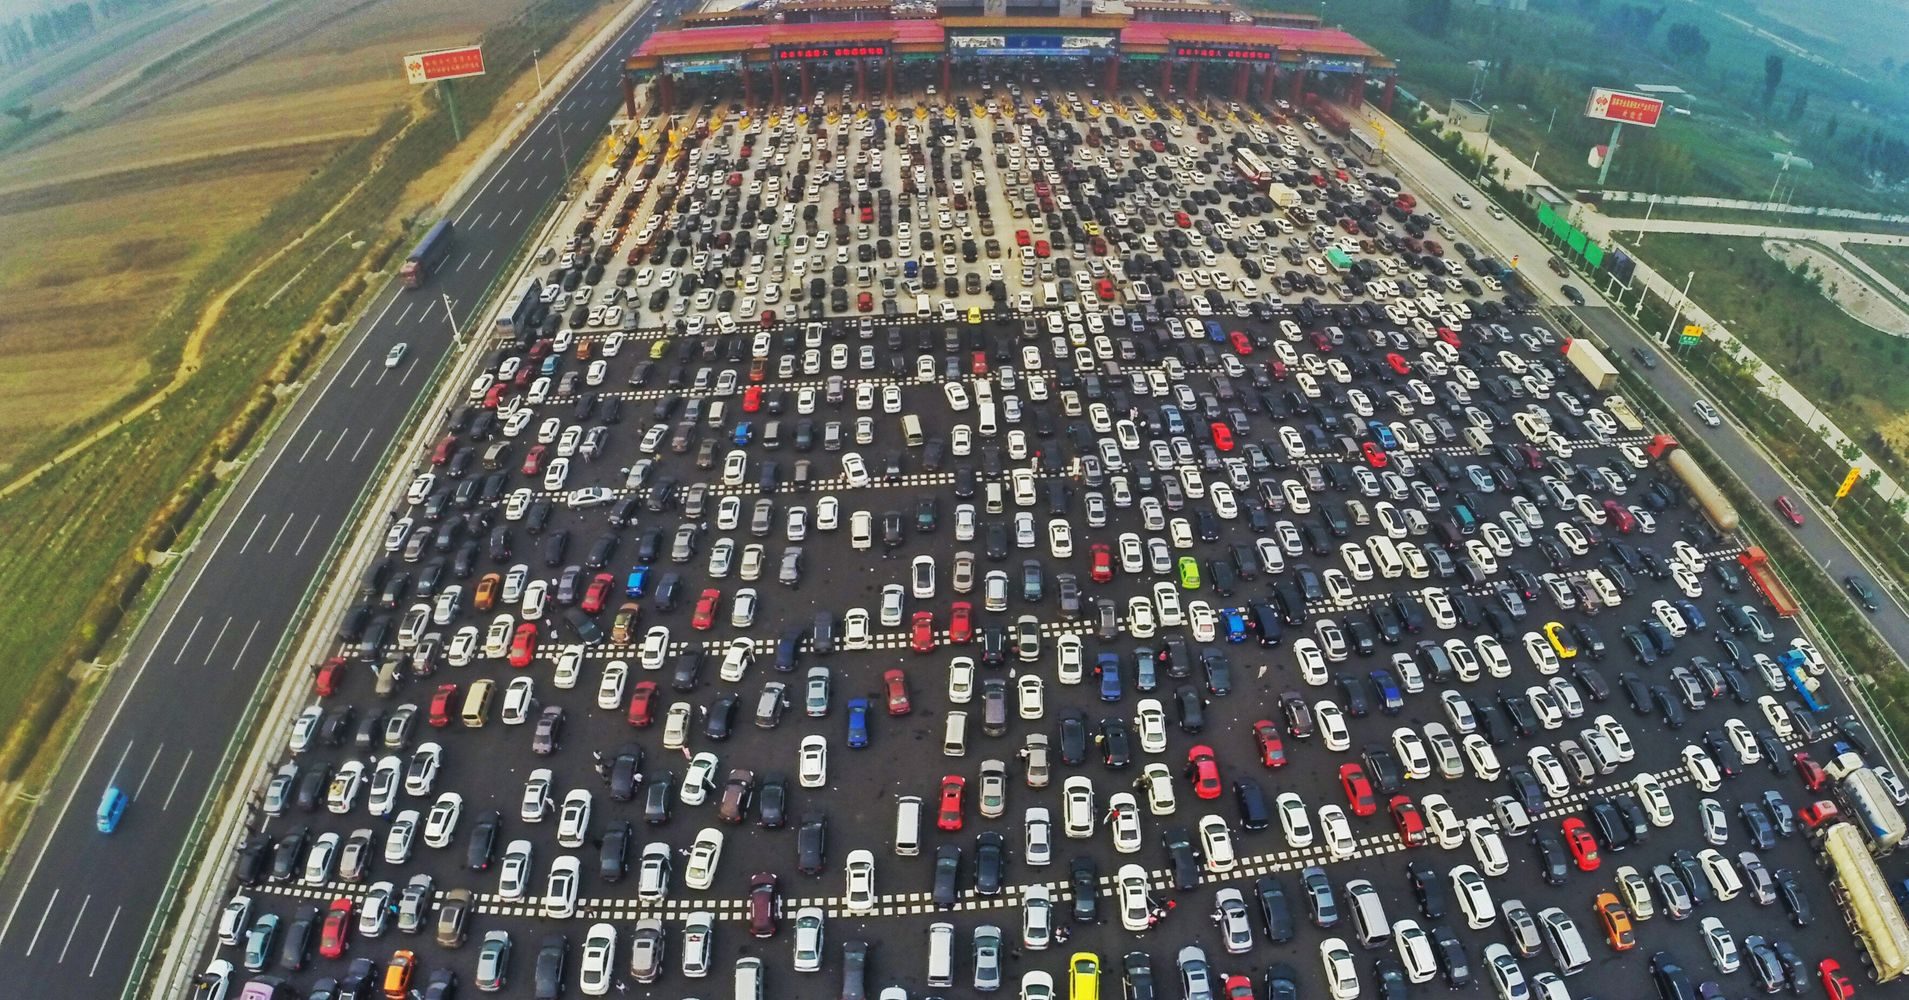 National City Mile Of Cars >> Unbelievable Photos From China's Traffic Jam After 7-Day Holiday | HuffPost